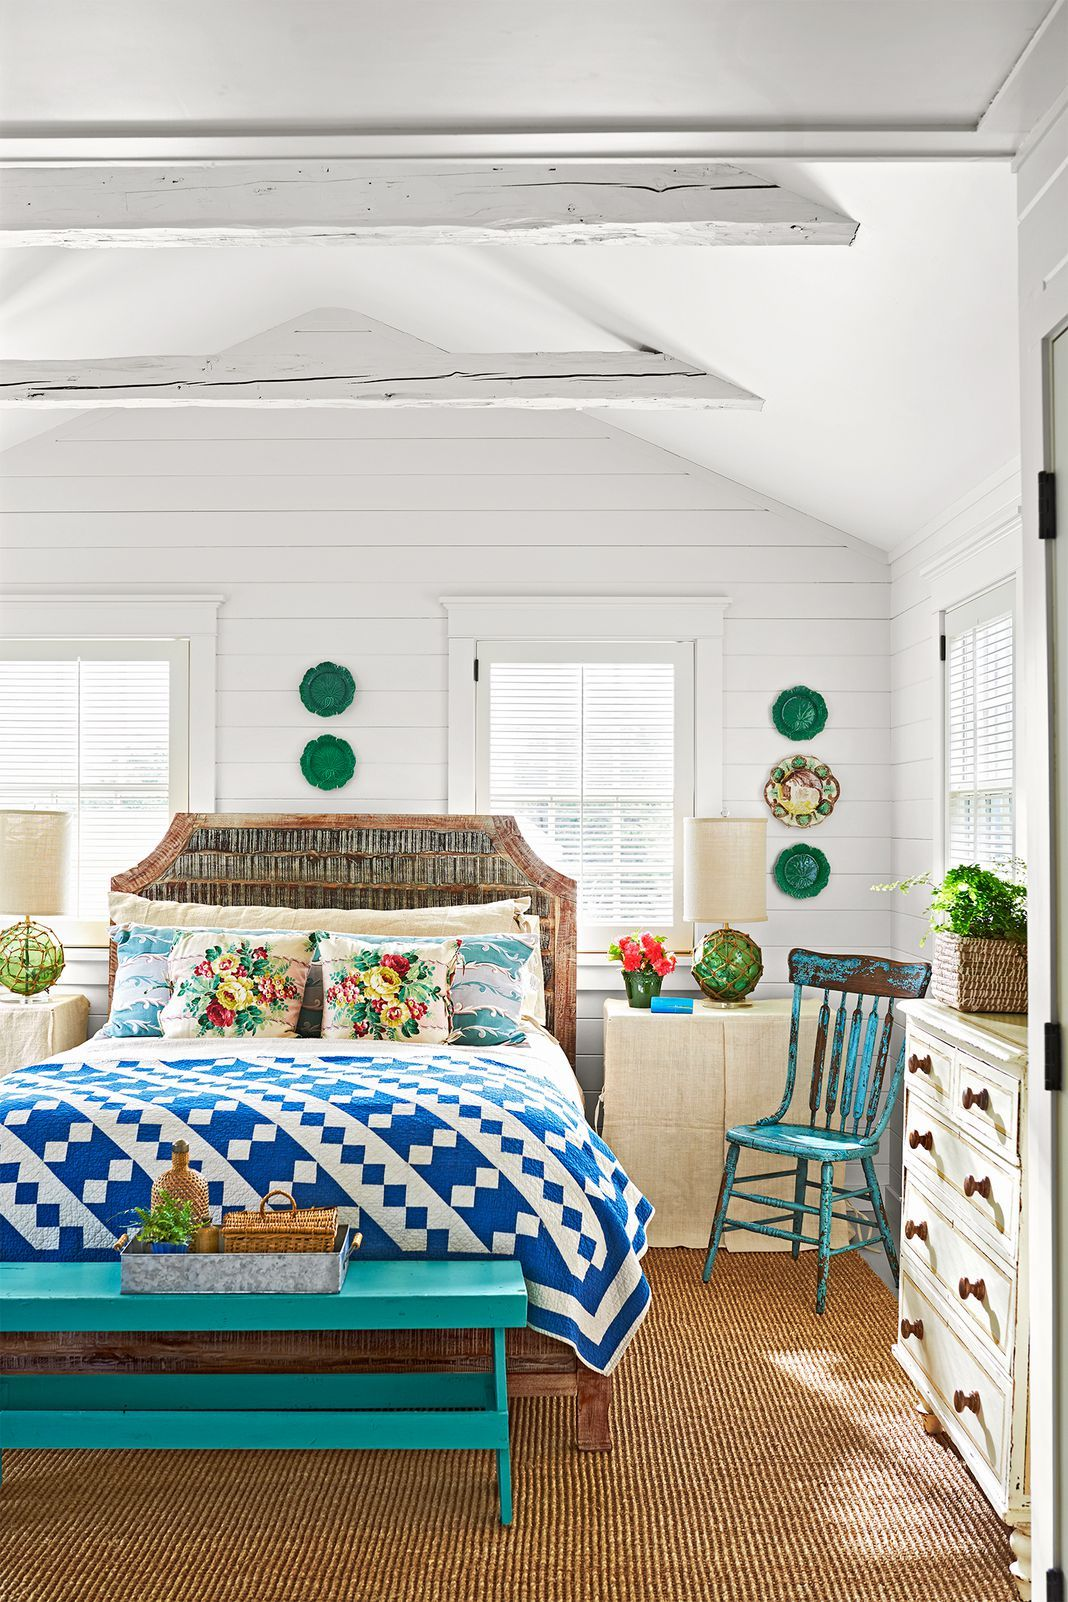 How One Couple Turned An Old Fishing Shack Into A Stunning Summer